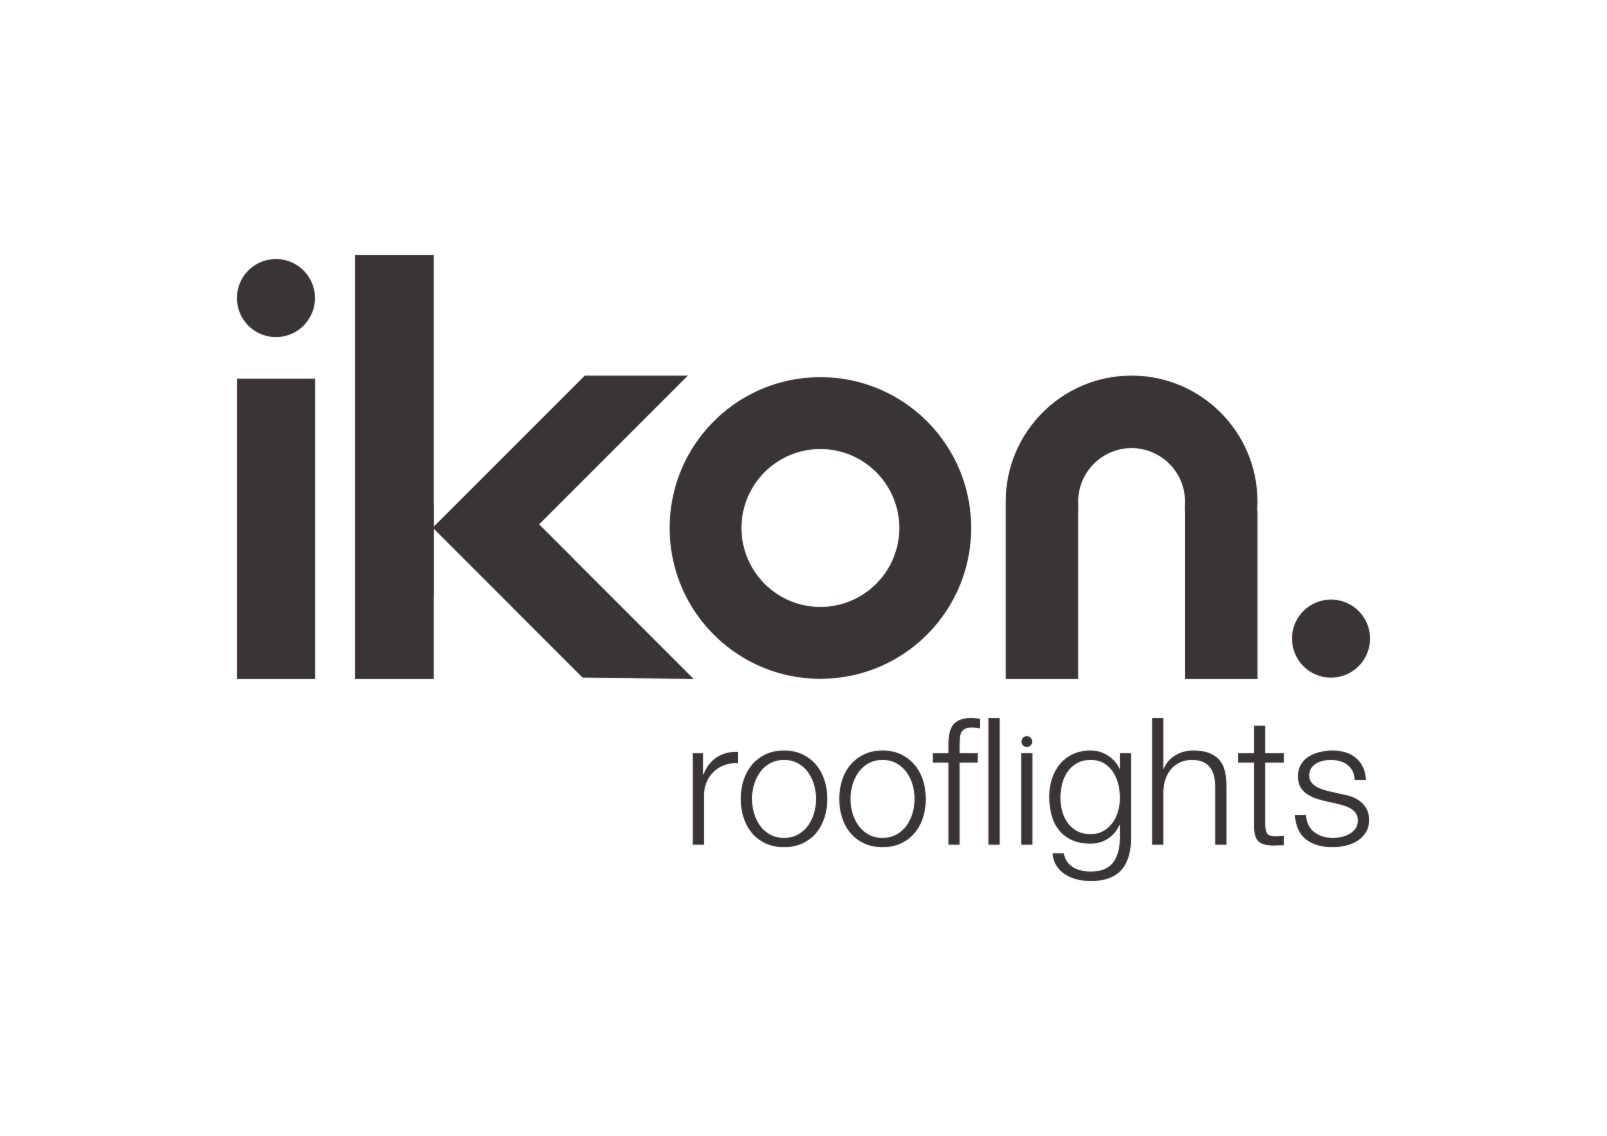 Ikon Rooflights Ltd